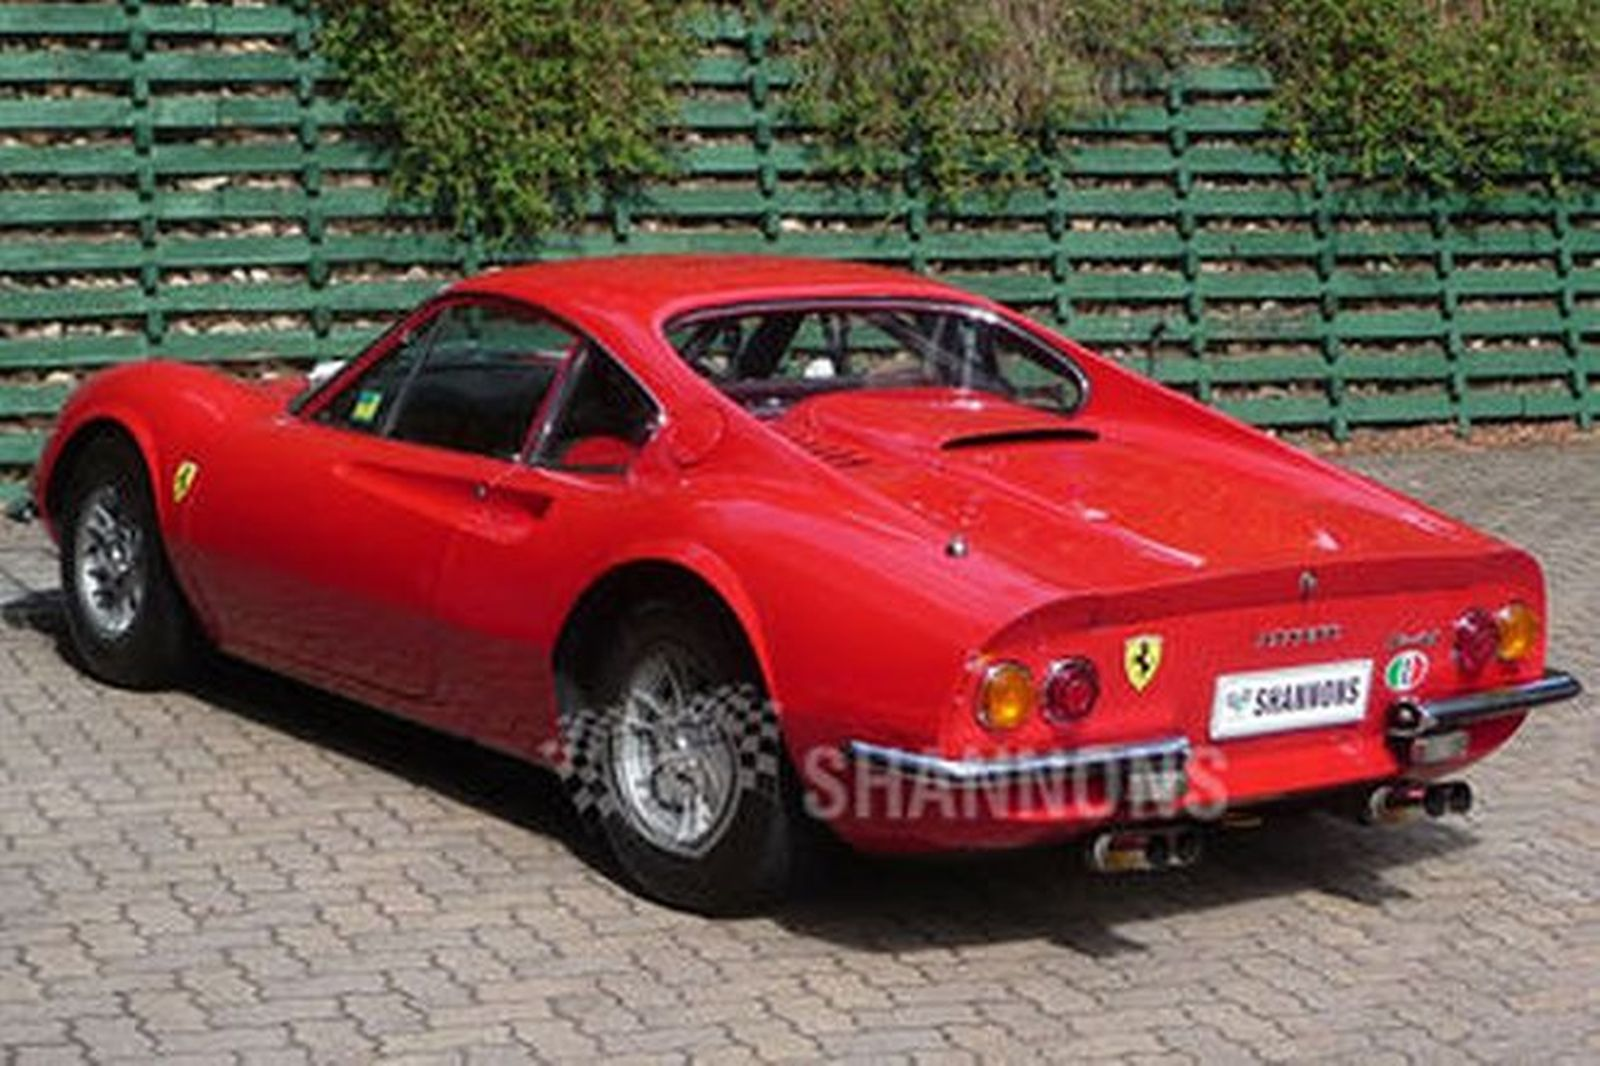 Sold Ferrari Dino 246 Gt Coupe Auctions Lot 21 Shannons